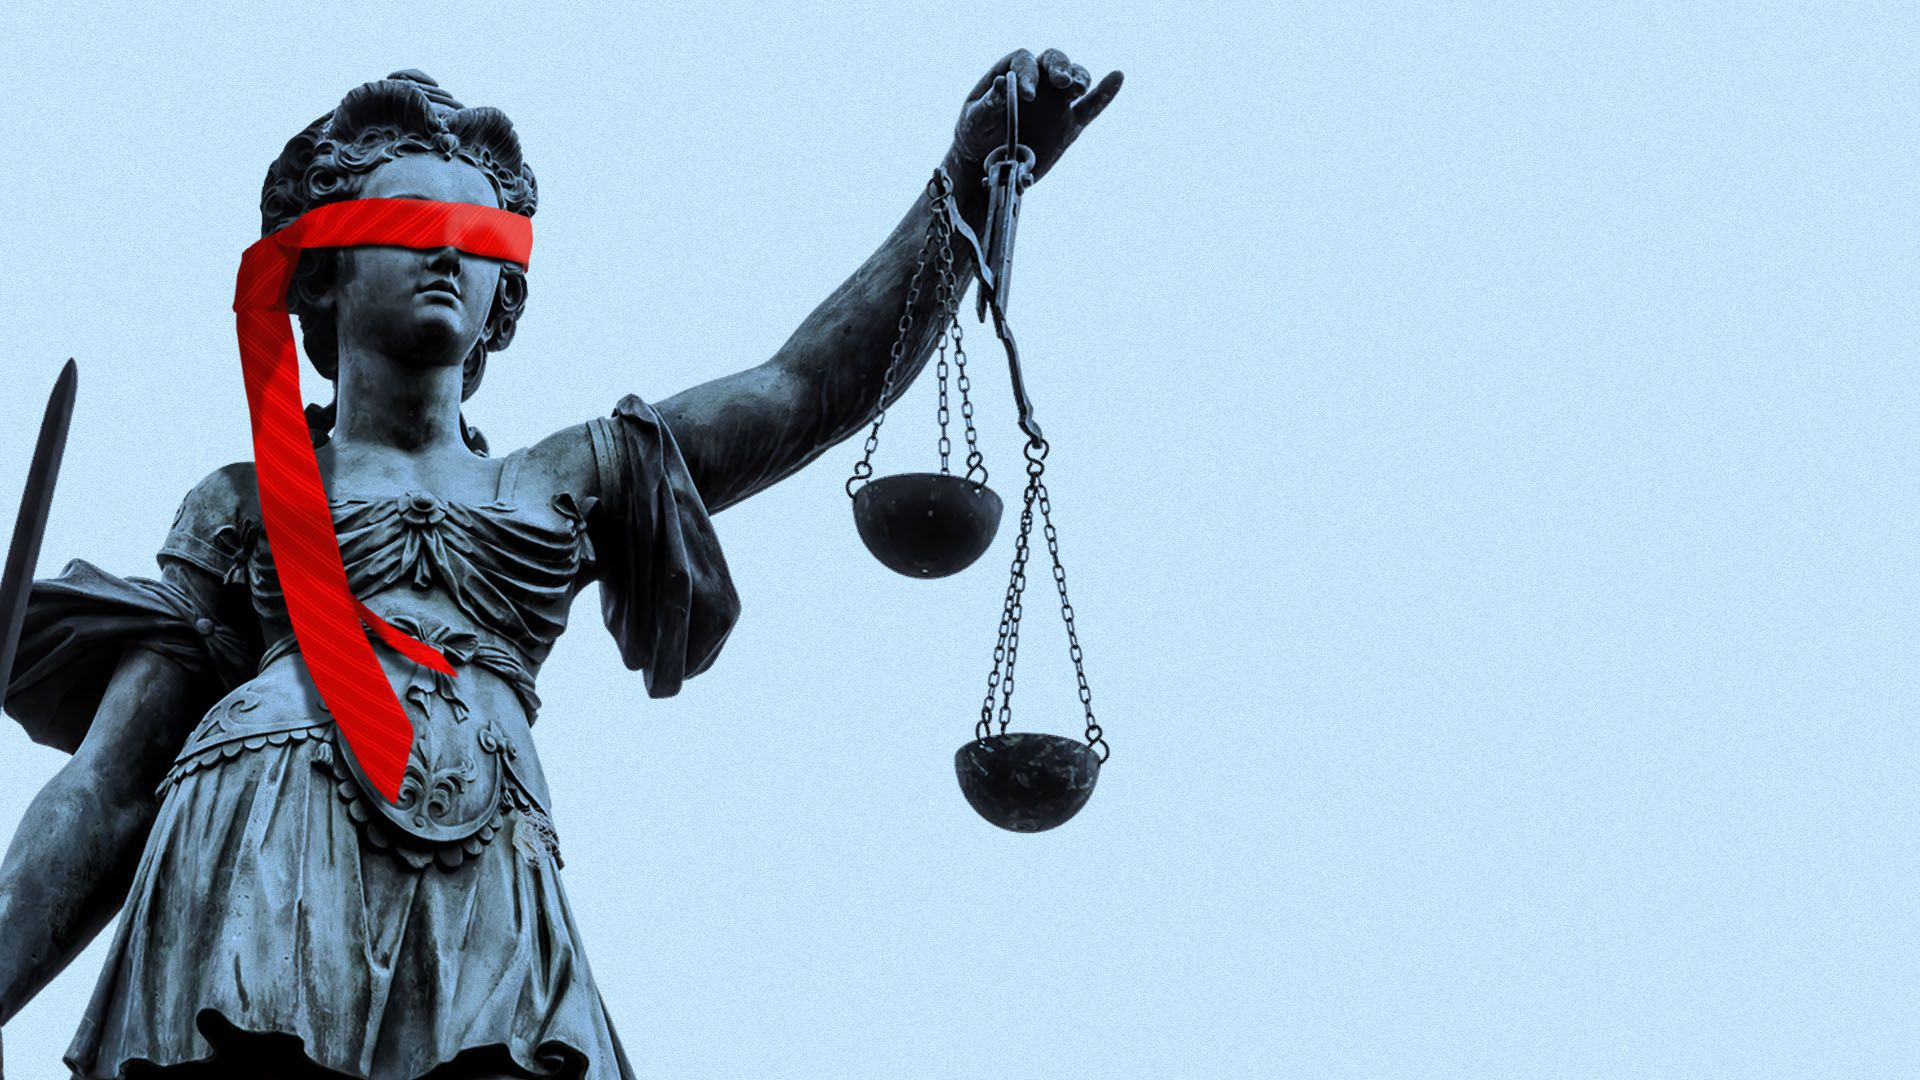 Illustration of a statue of Justice wearing a red tie as a blindfold